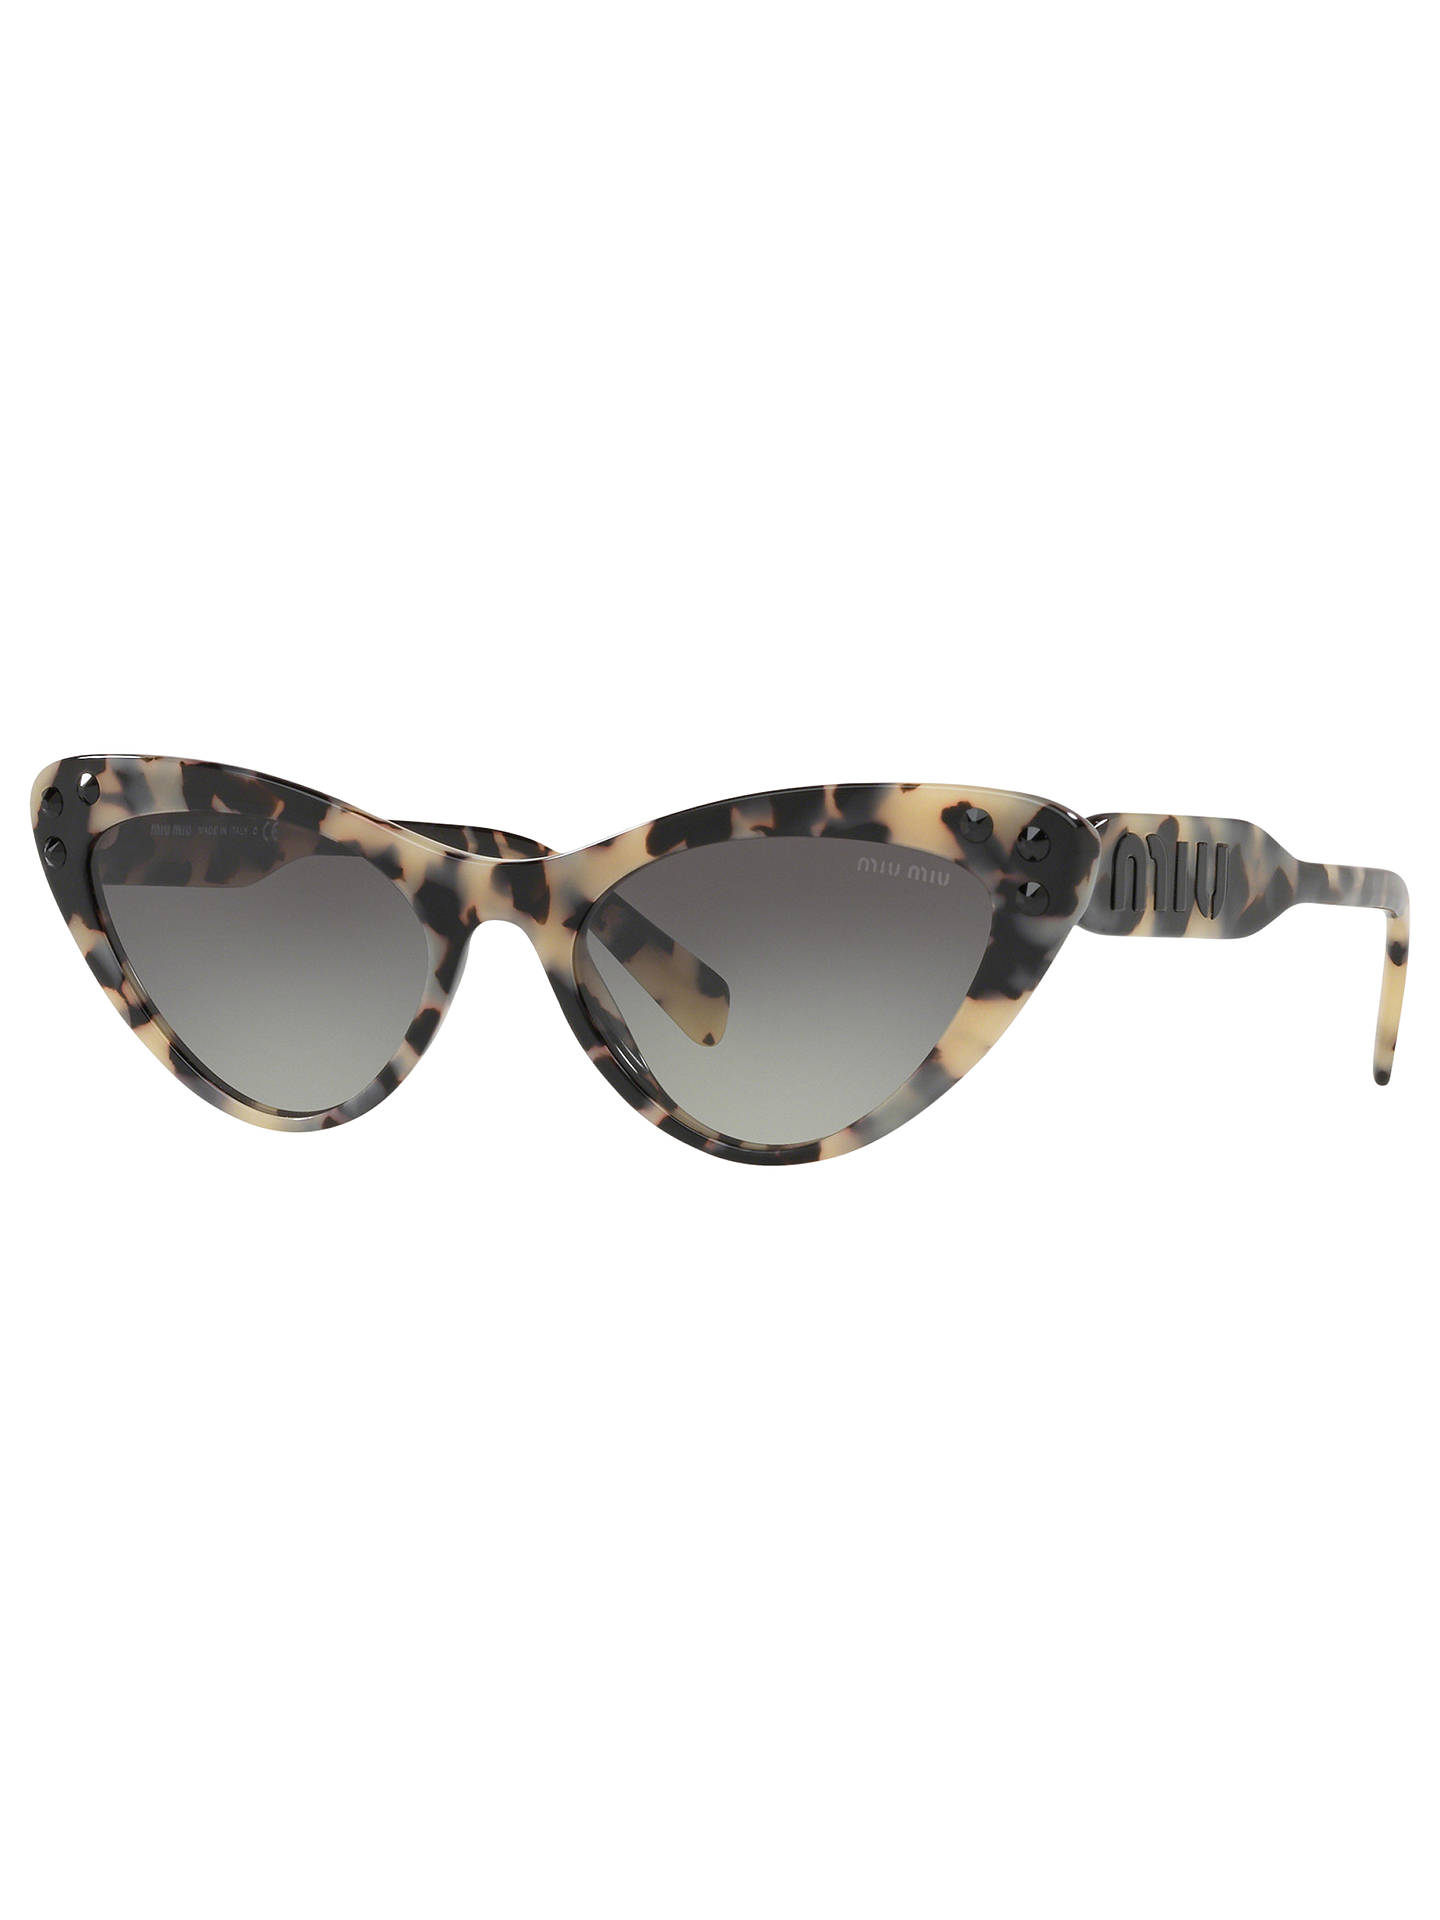 cb8b4047f65 Buy Miu Miu MU 05TS Women s Stud Cat s Eye Sunglasses